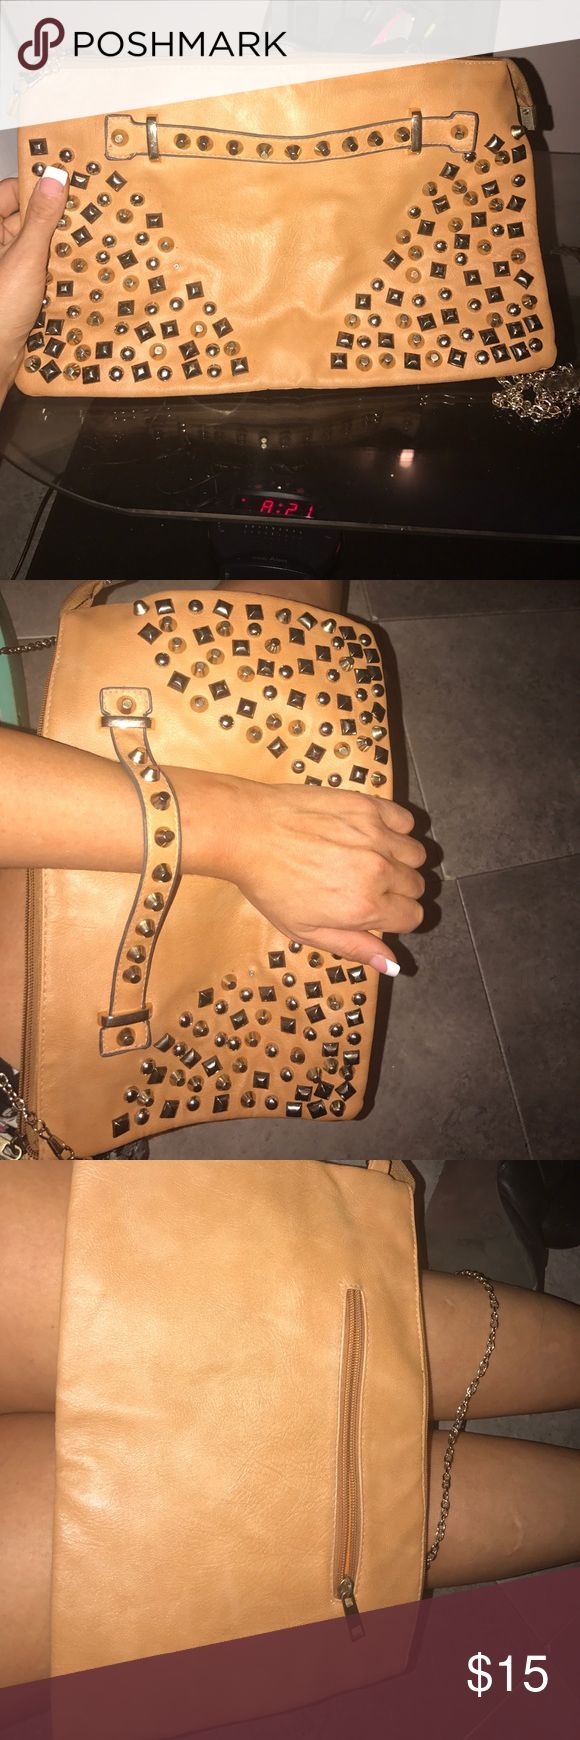 Tan leather studded large clutch bag Never used! This bag can fit everything. The studs really make it stand out. Great bag for all seasons Bags Clutches & Wristlets